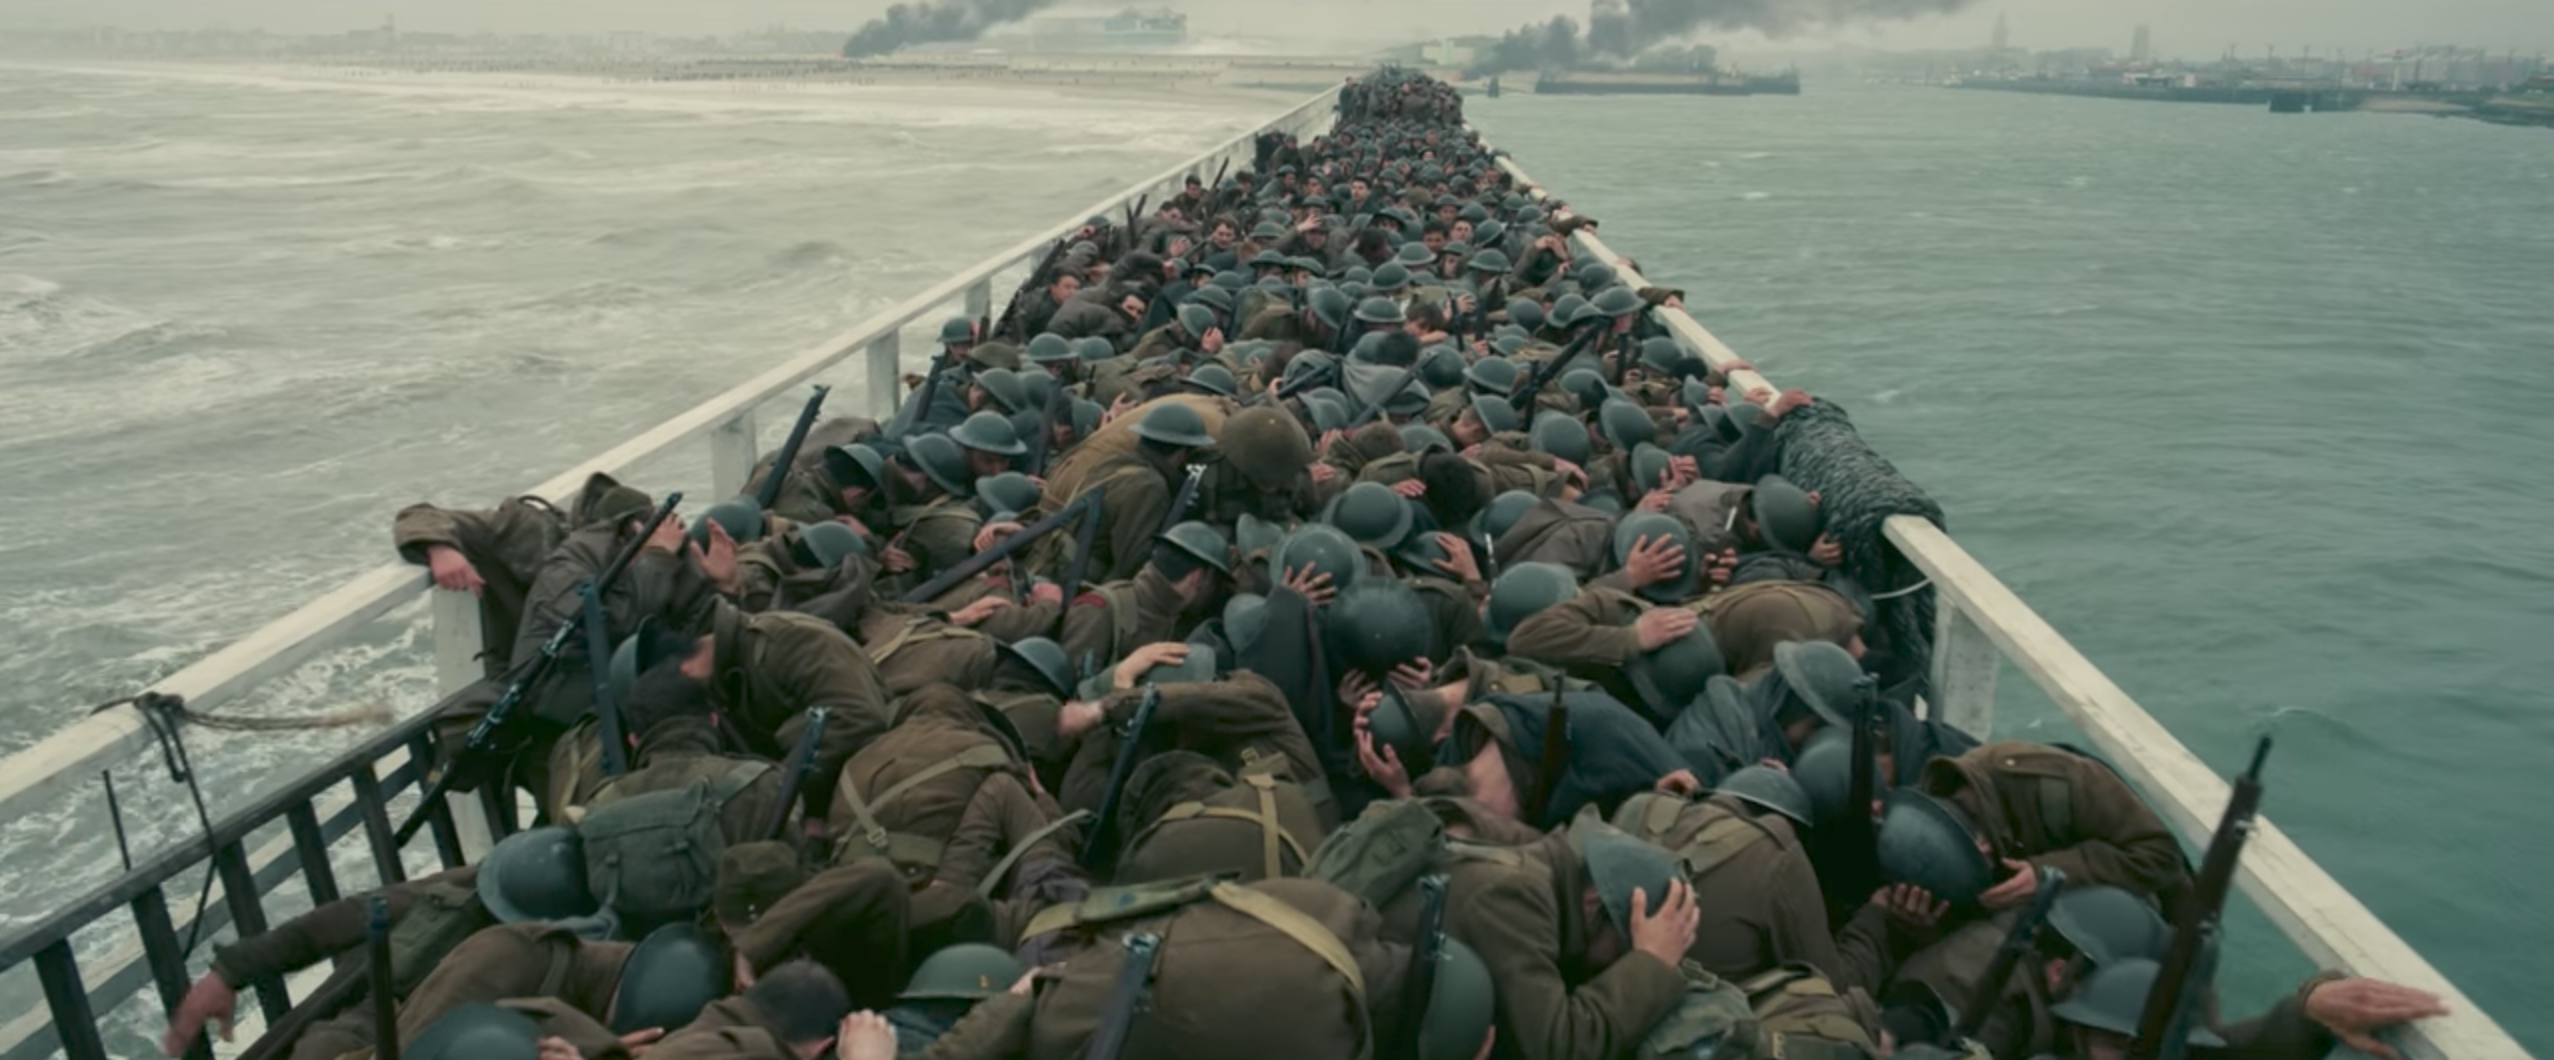 The new trailer for 'Dunkirk' is a heart racing slow burn